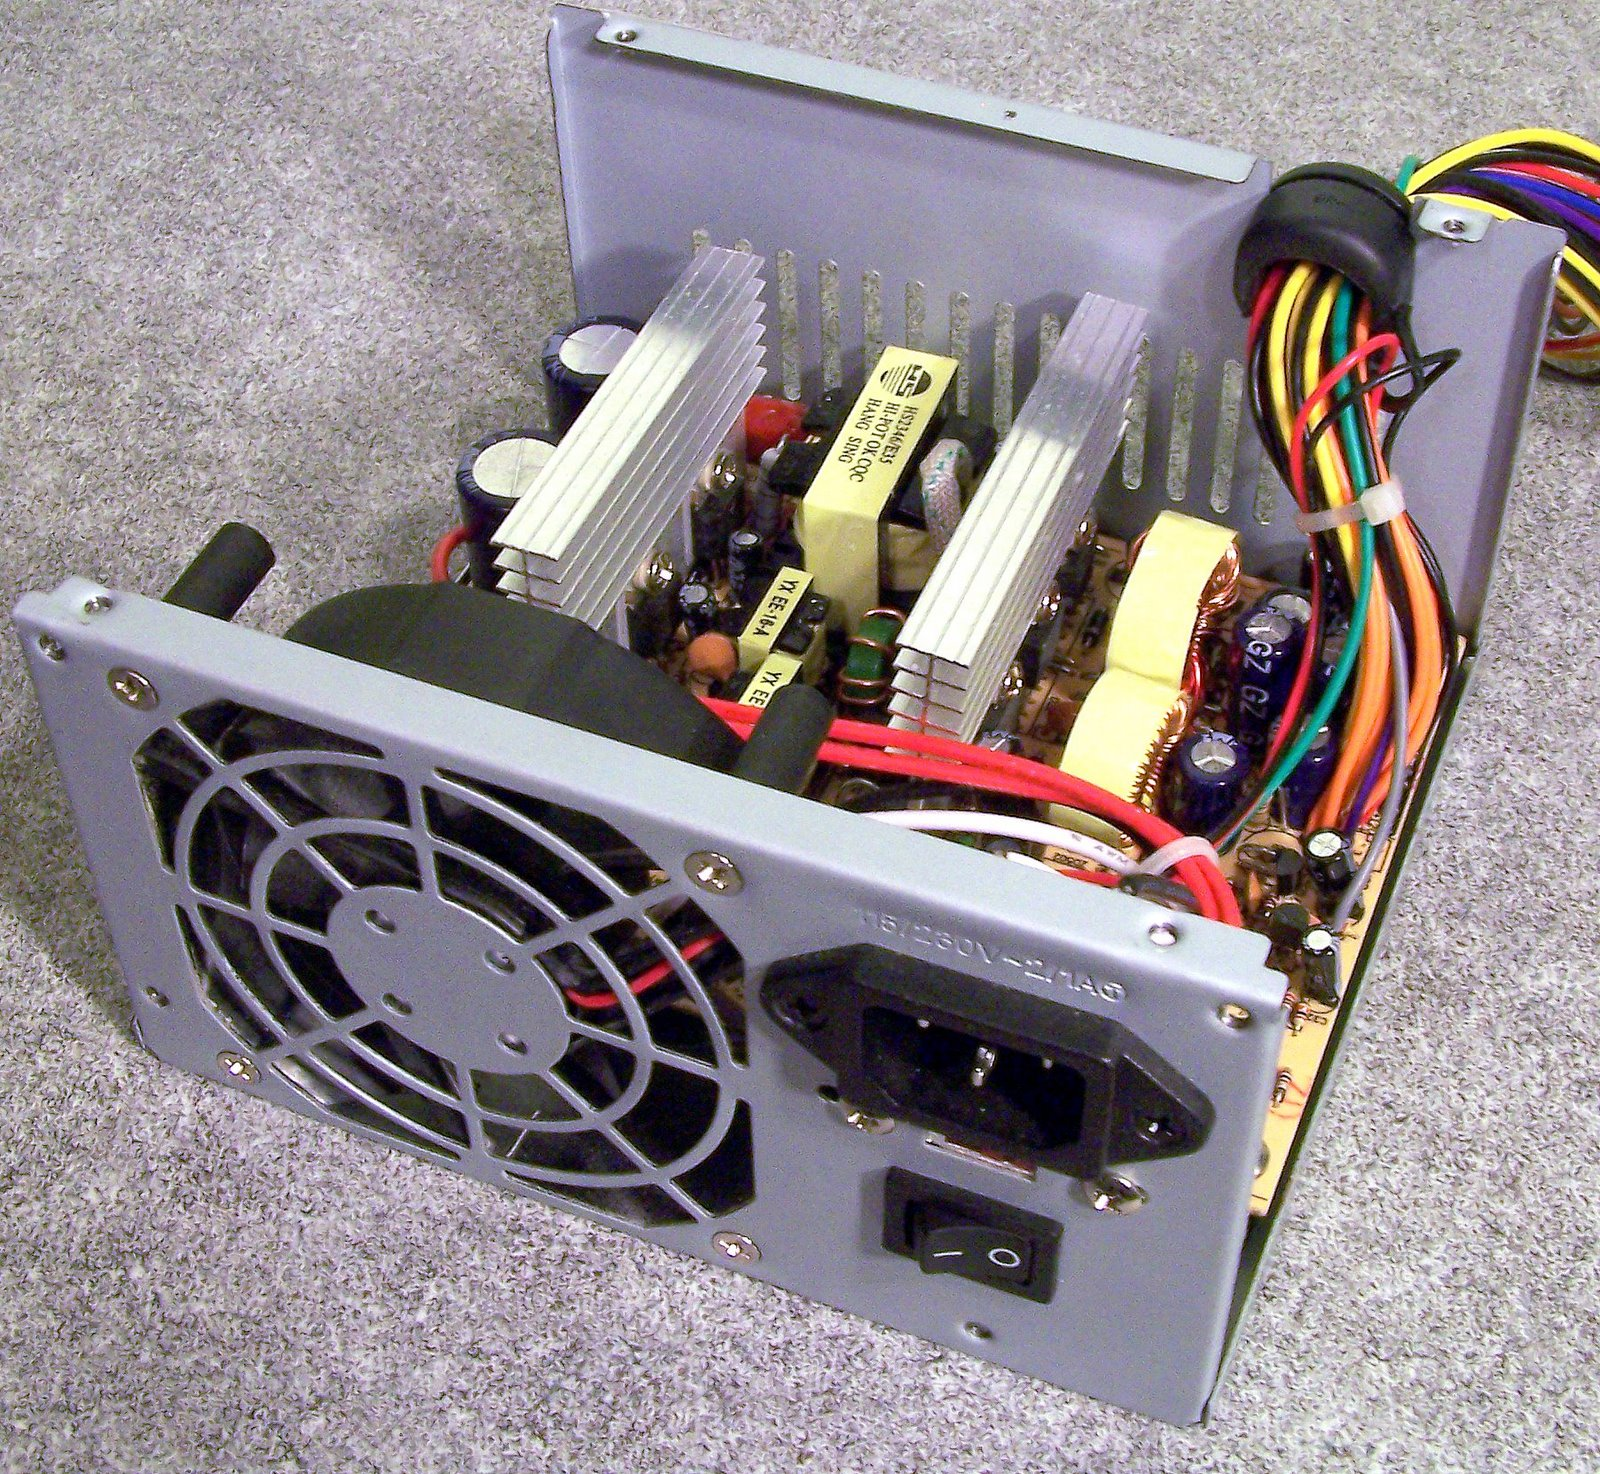 http://2.bp.blogspot.com/_Zn14K6q8Lx0/TIxMaReiCbI/AAAAAAAAAac/qSlik5Q_Qic/s1600/power-supply-768753.jpg